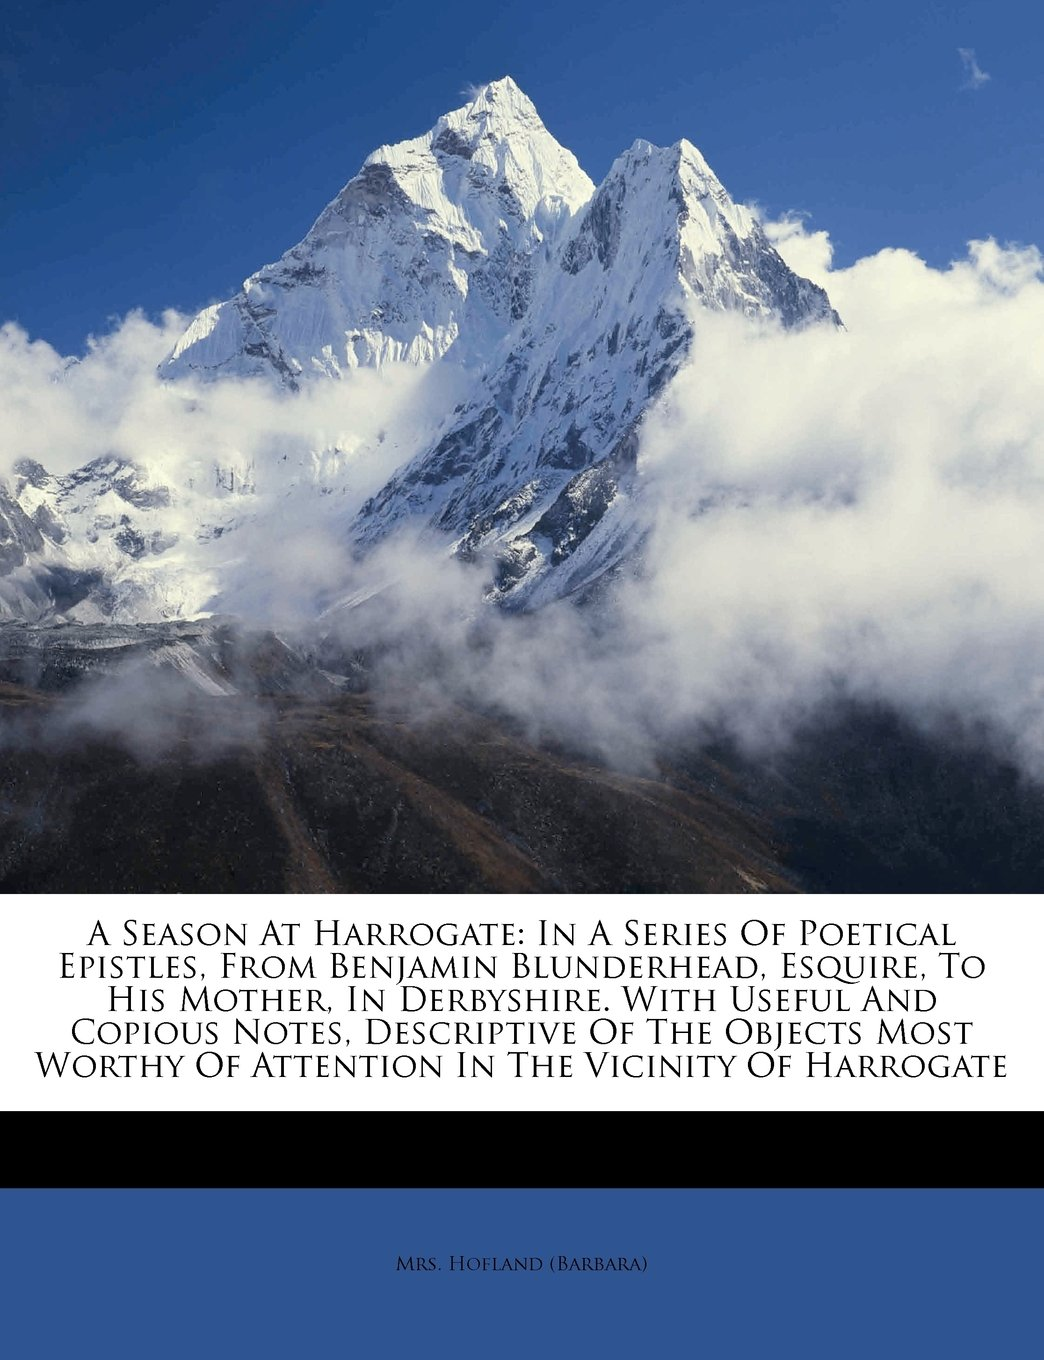 Download A Season At Harrogate: In A Series Of Poetical Epistles, From Benjamin Blunderhead, Esquire, To His Mother, In Derbyshire. With Useful And Copious ... Of Attention In The Vicinity Of Harrogate ebook